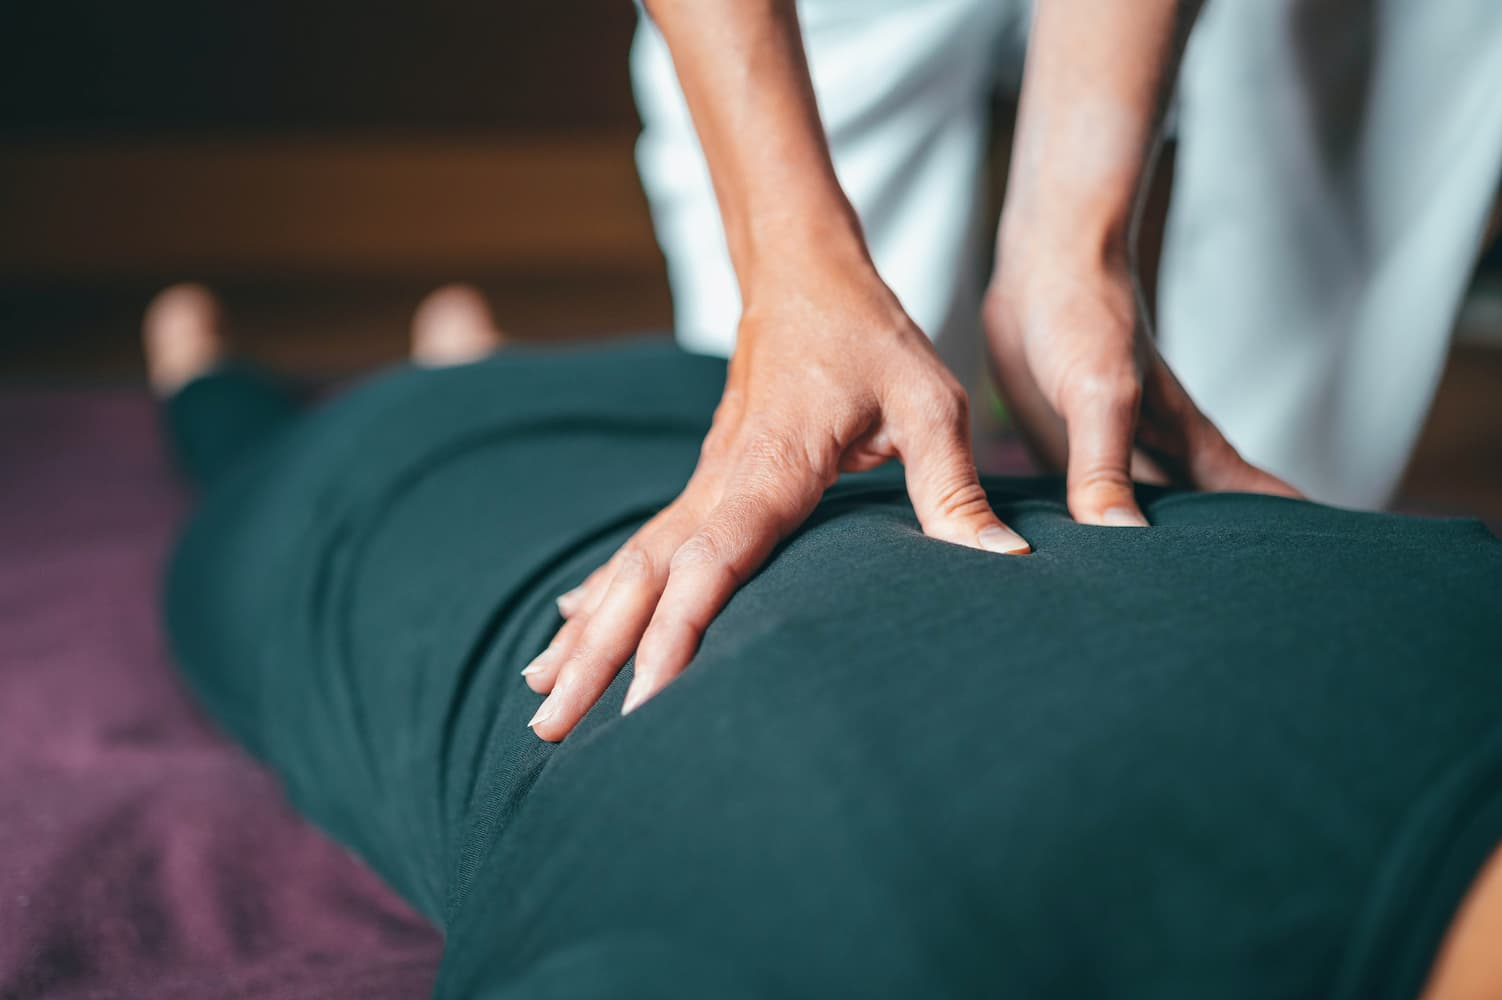 What is trigger point therapy?